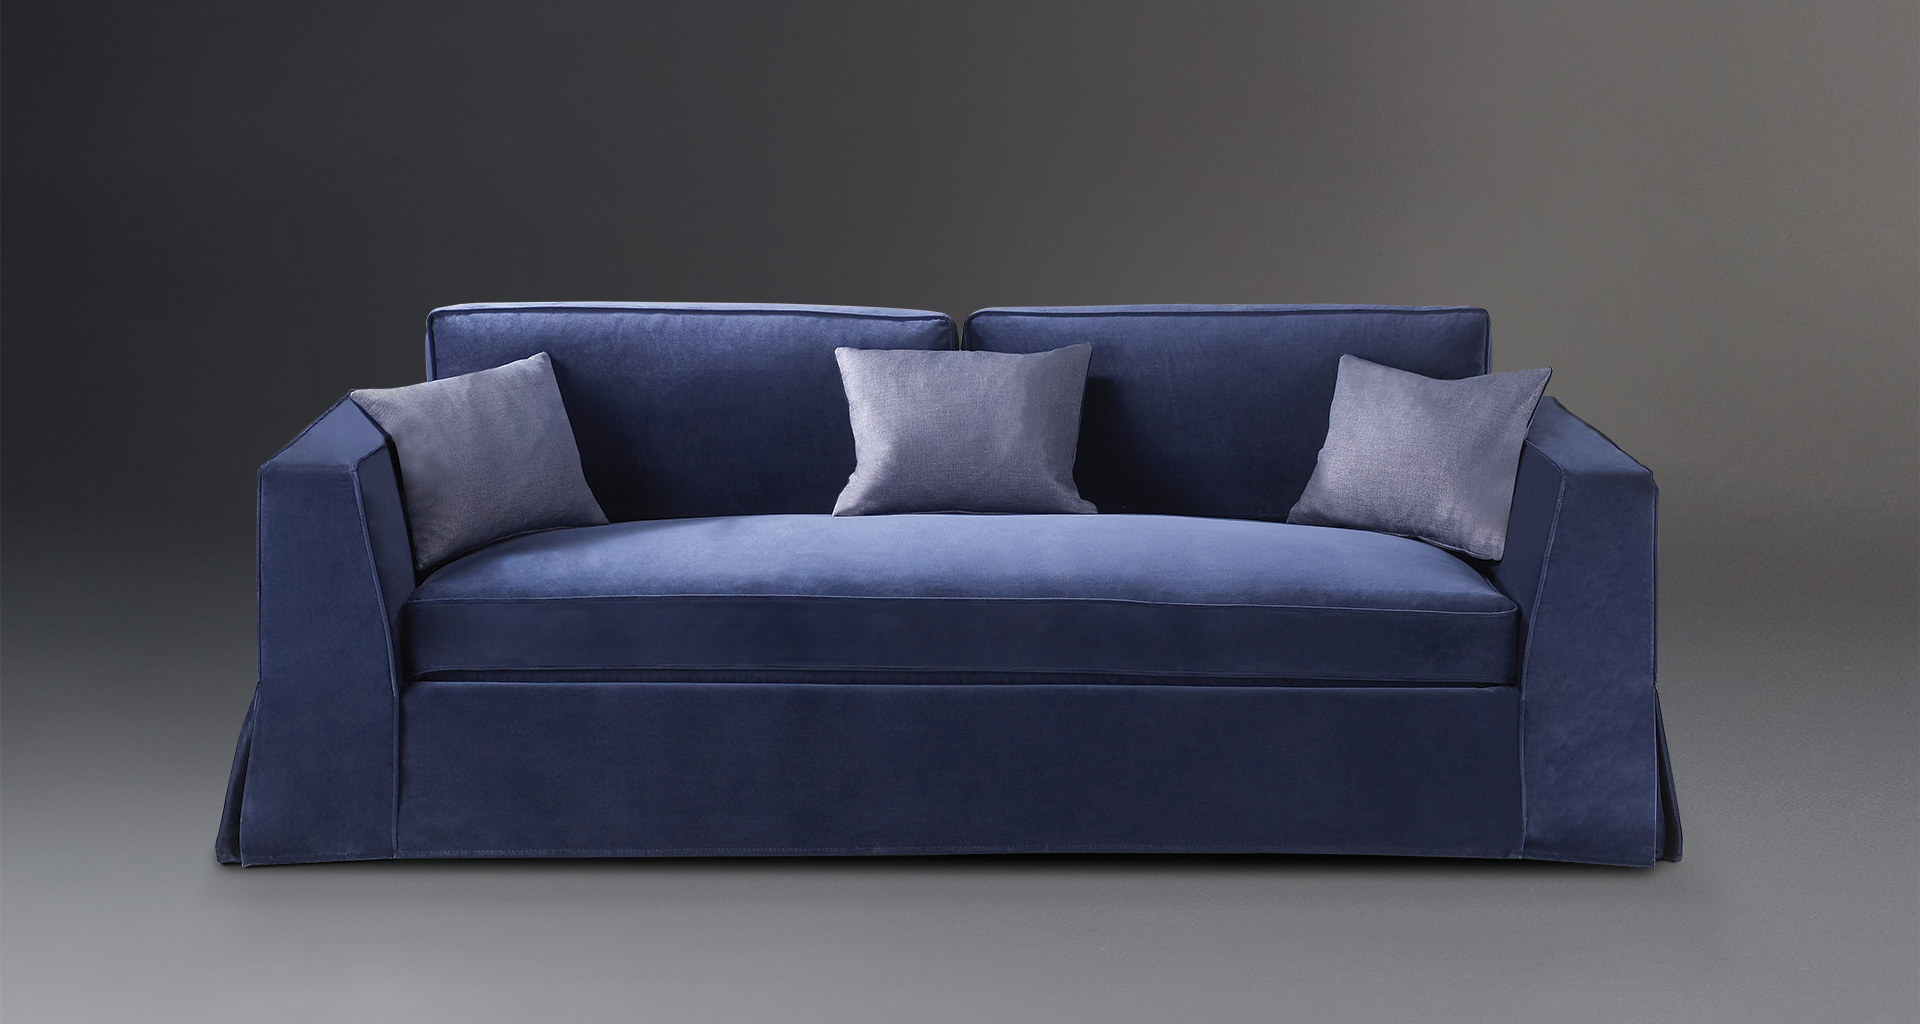 Oscar is a sofa completely covered in removable fabric, from Promemoria's catalogue | Promemoria